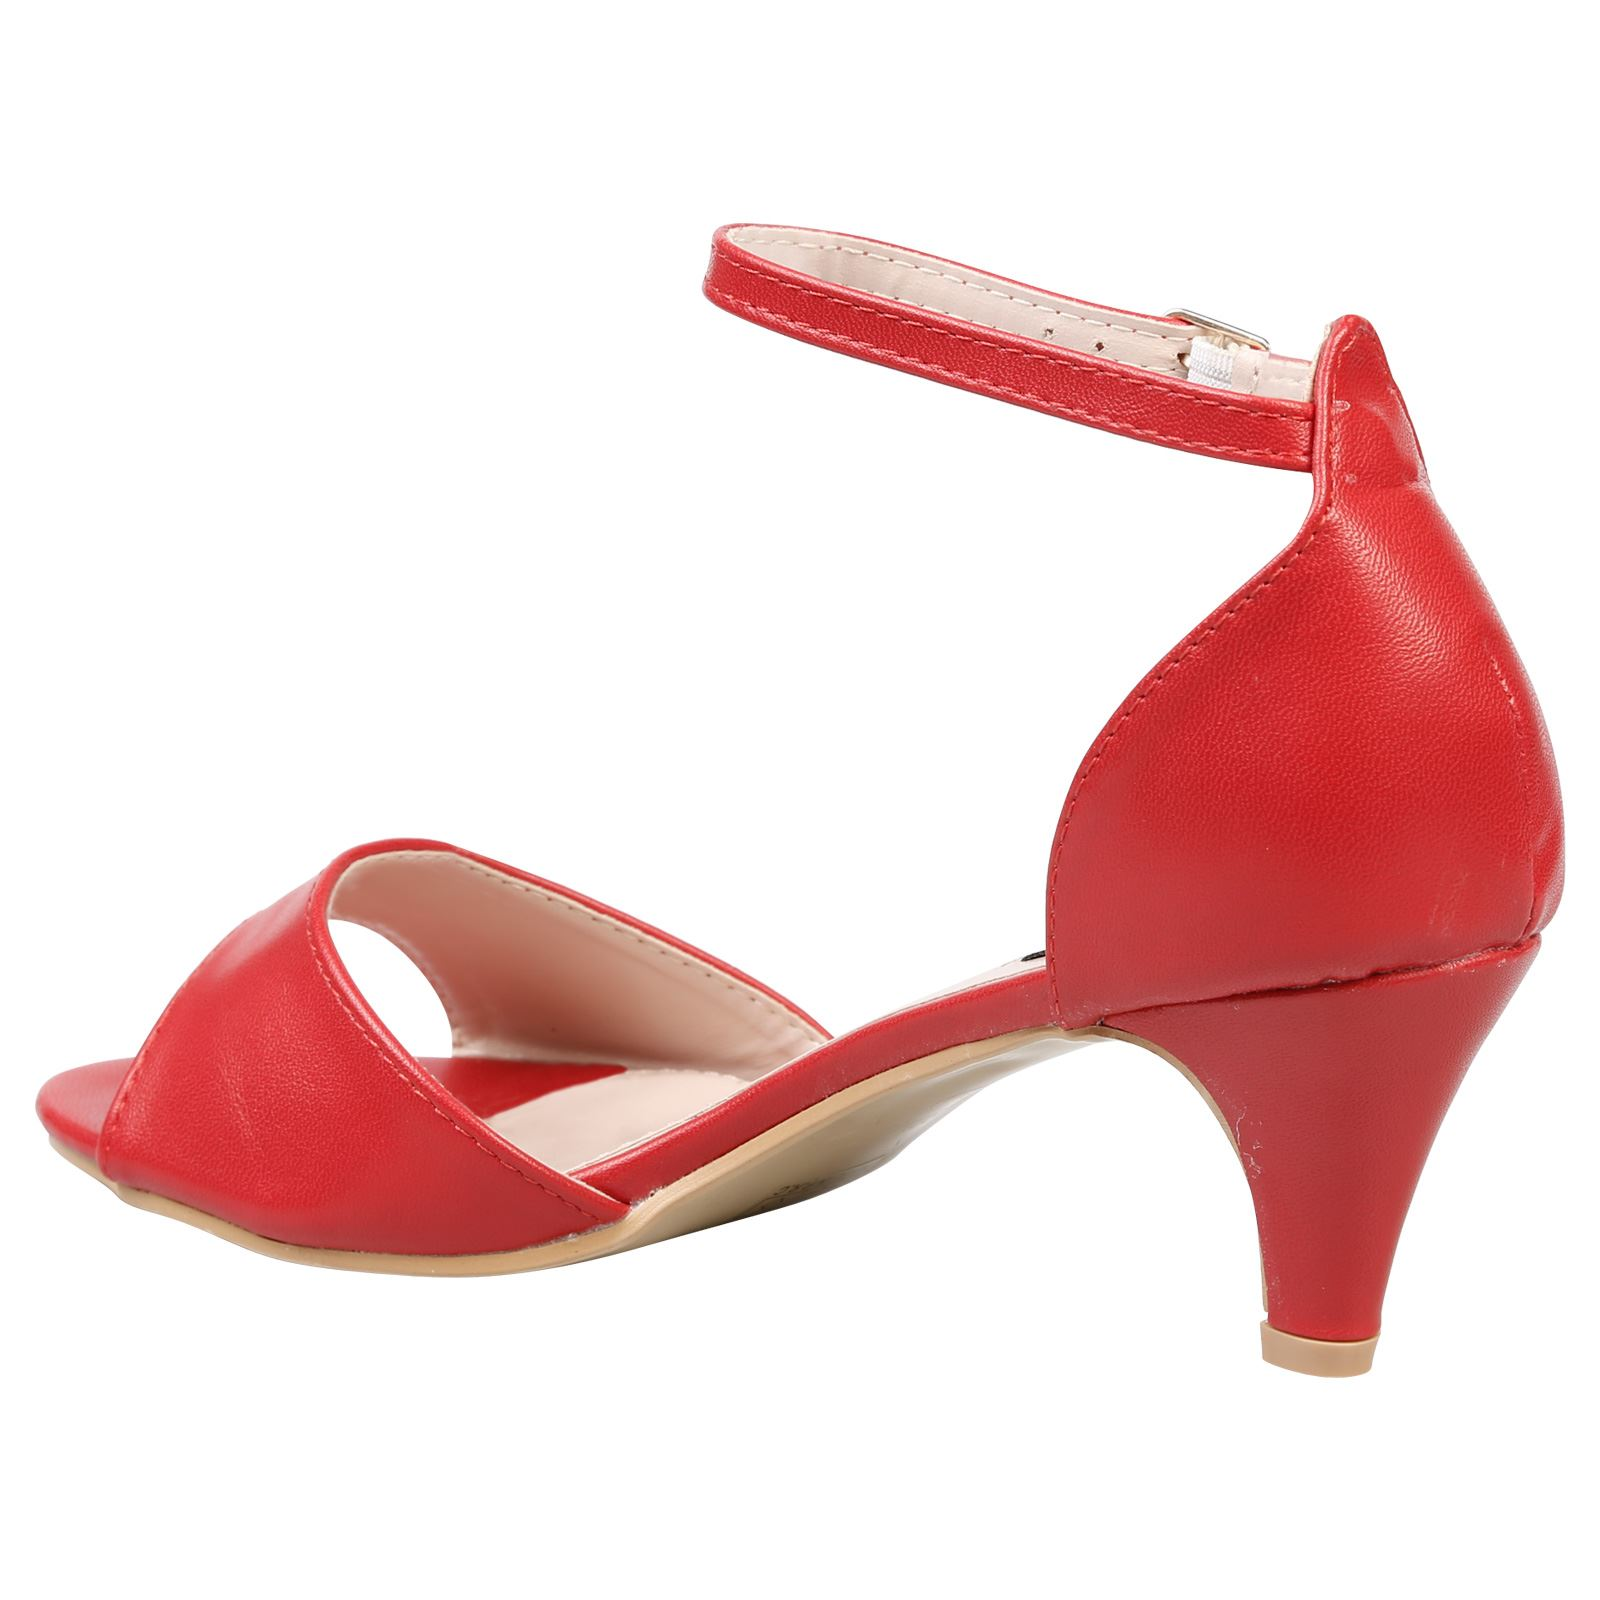 Laurie-Womens-Low-Mid-Kitten-Heel-Ankle-Strap-Sandals-Ladies-Peep-Toe-Shoes-Size